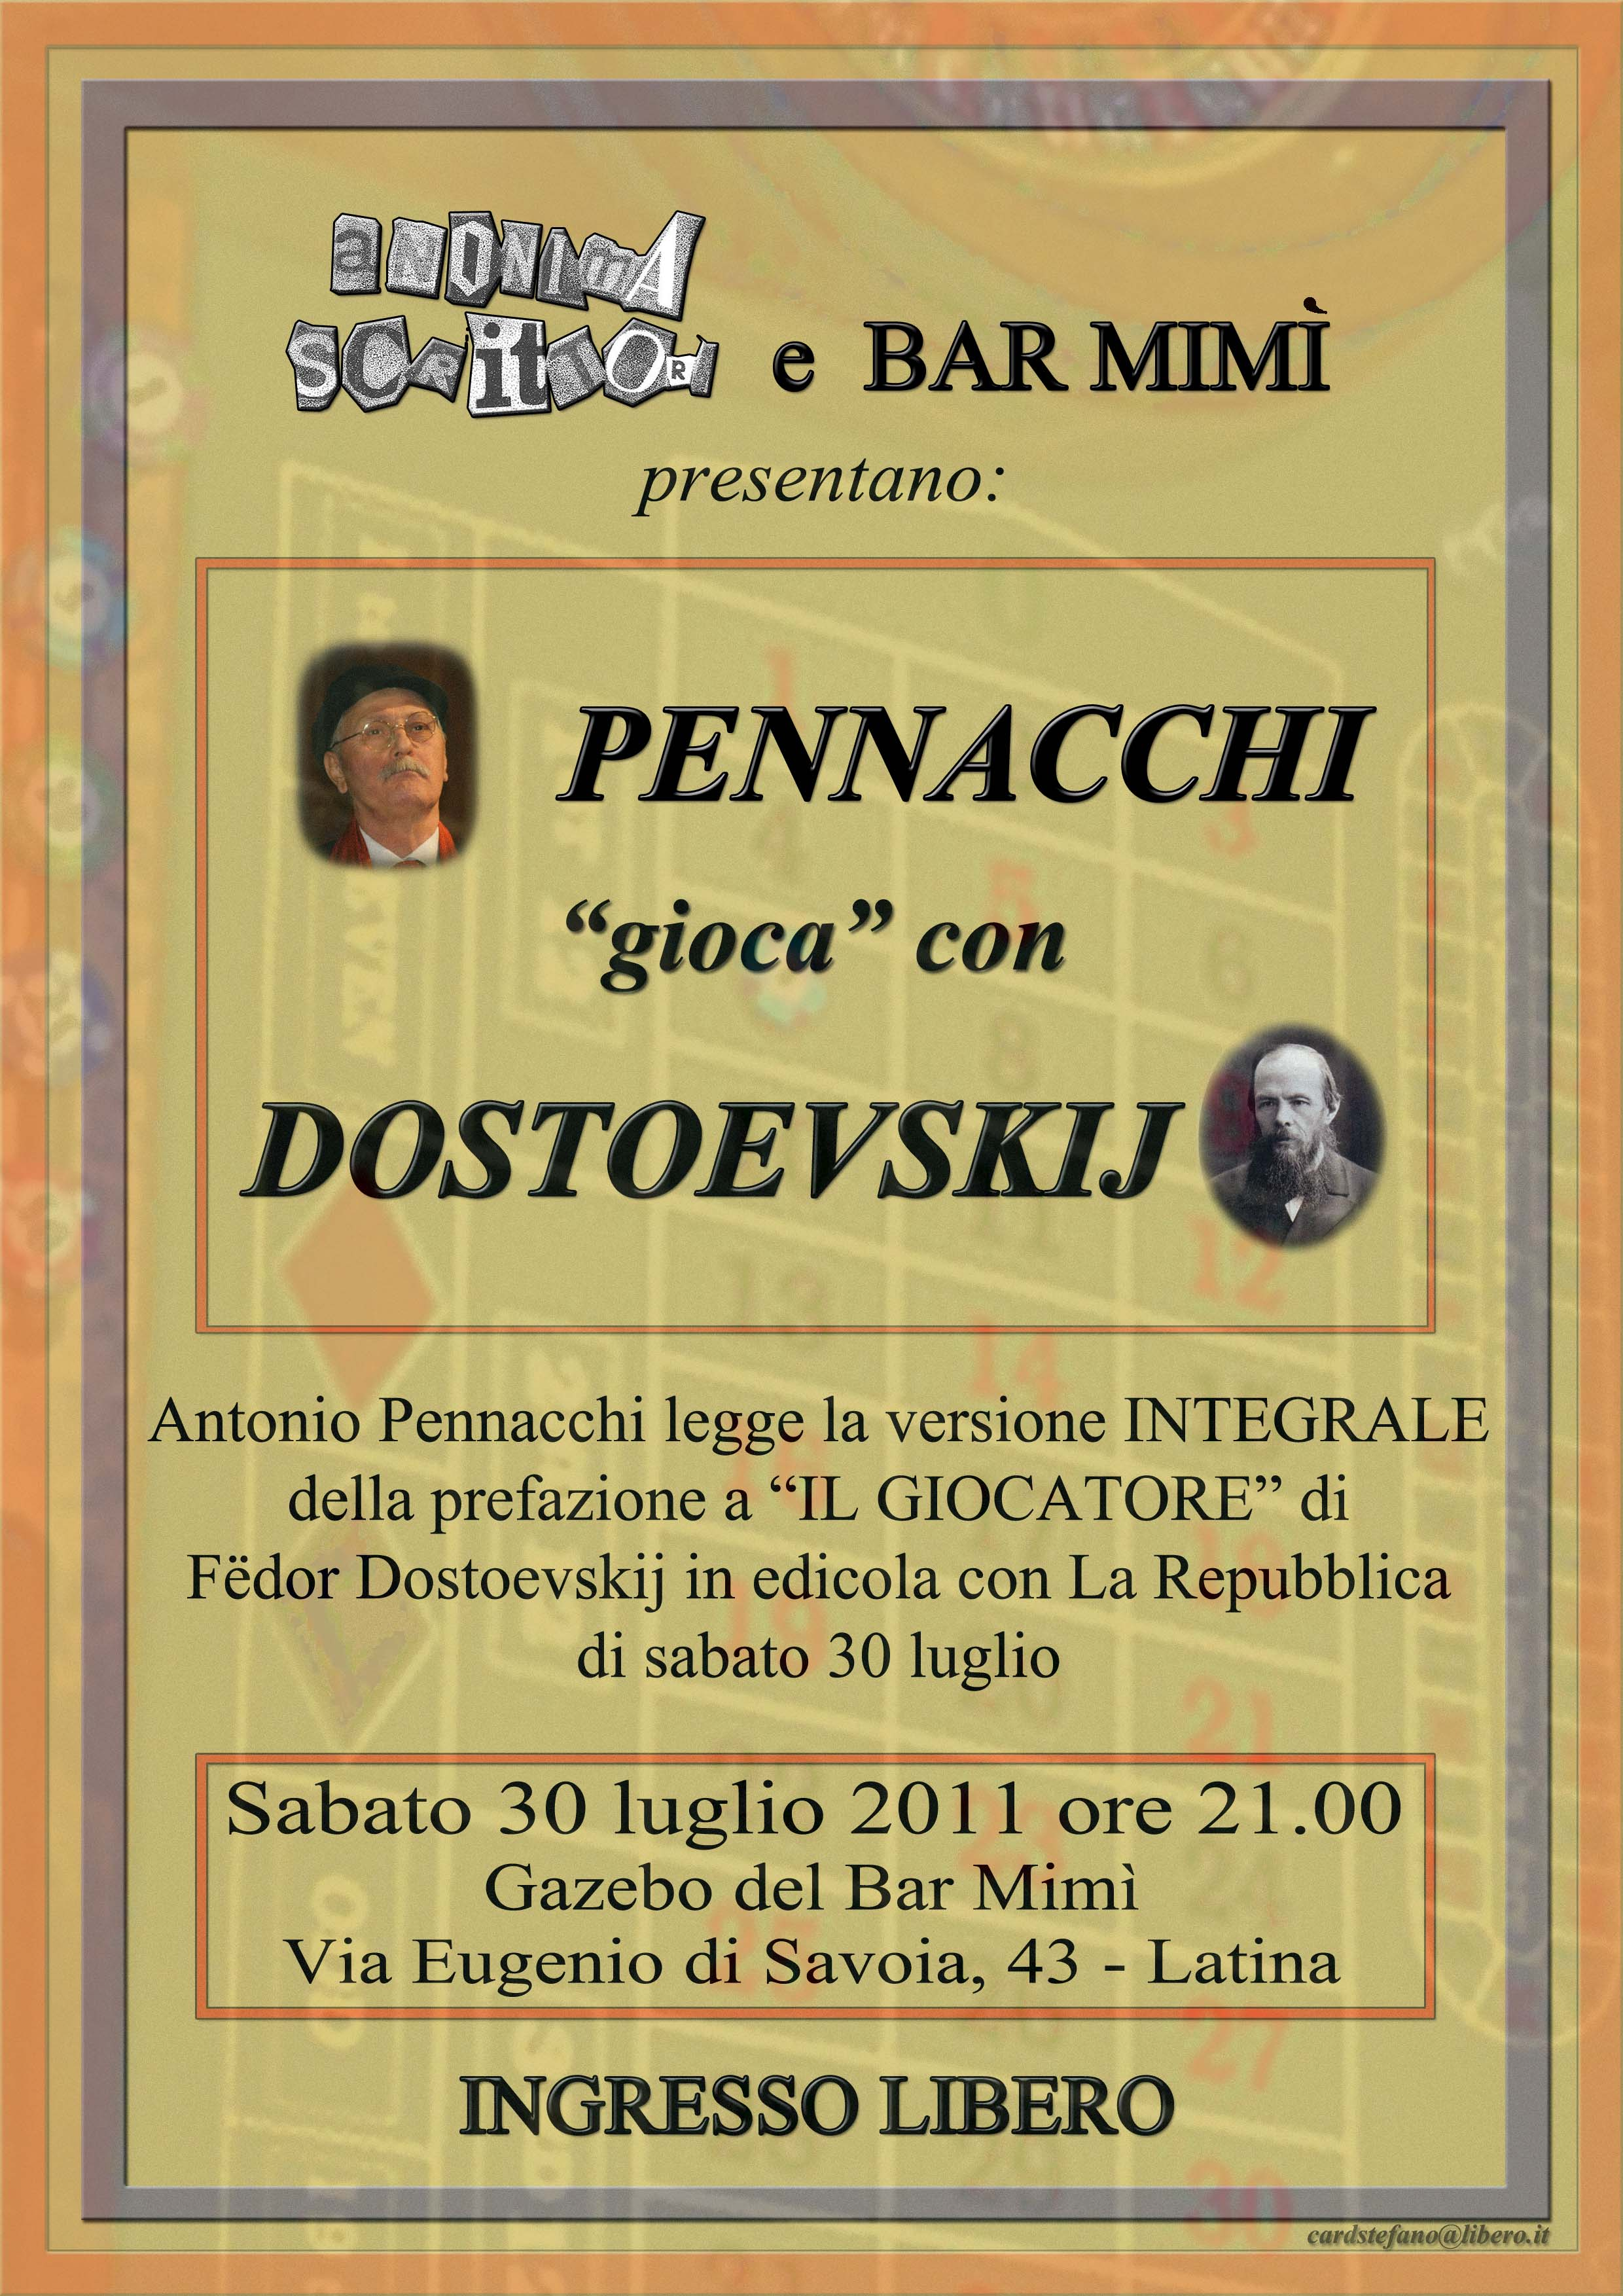 Pennacchi gioca con Dostoevskij